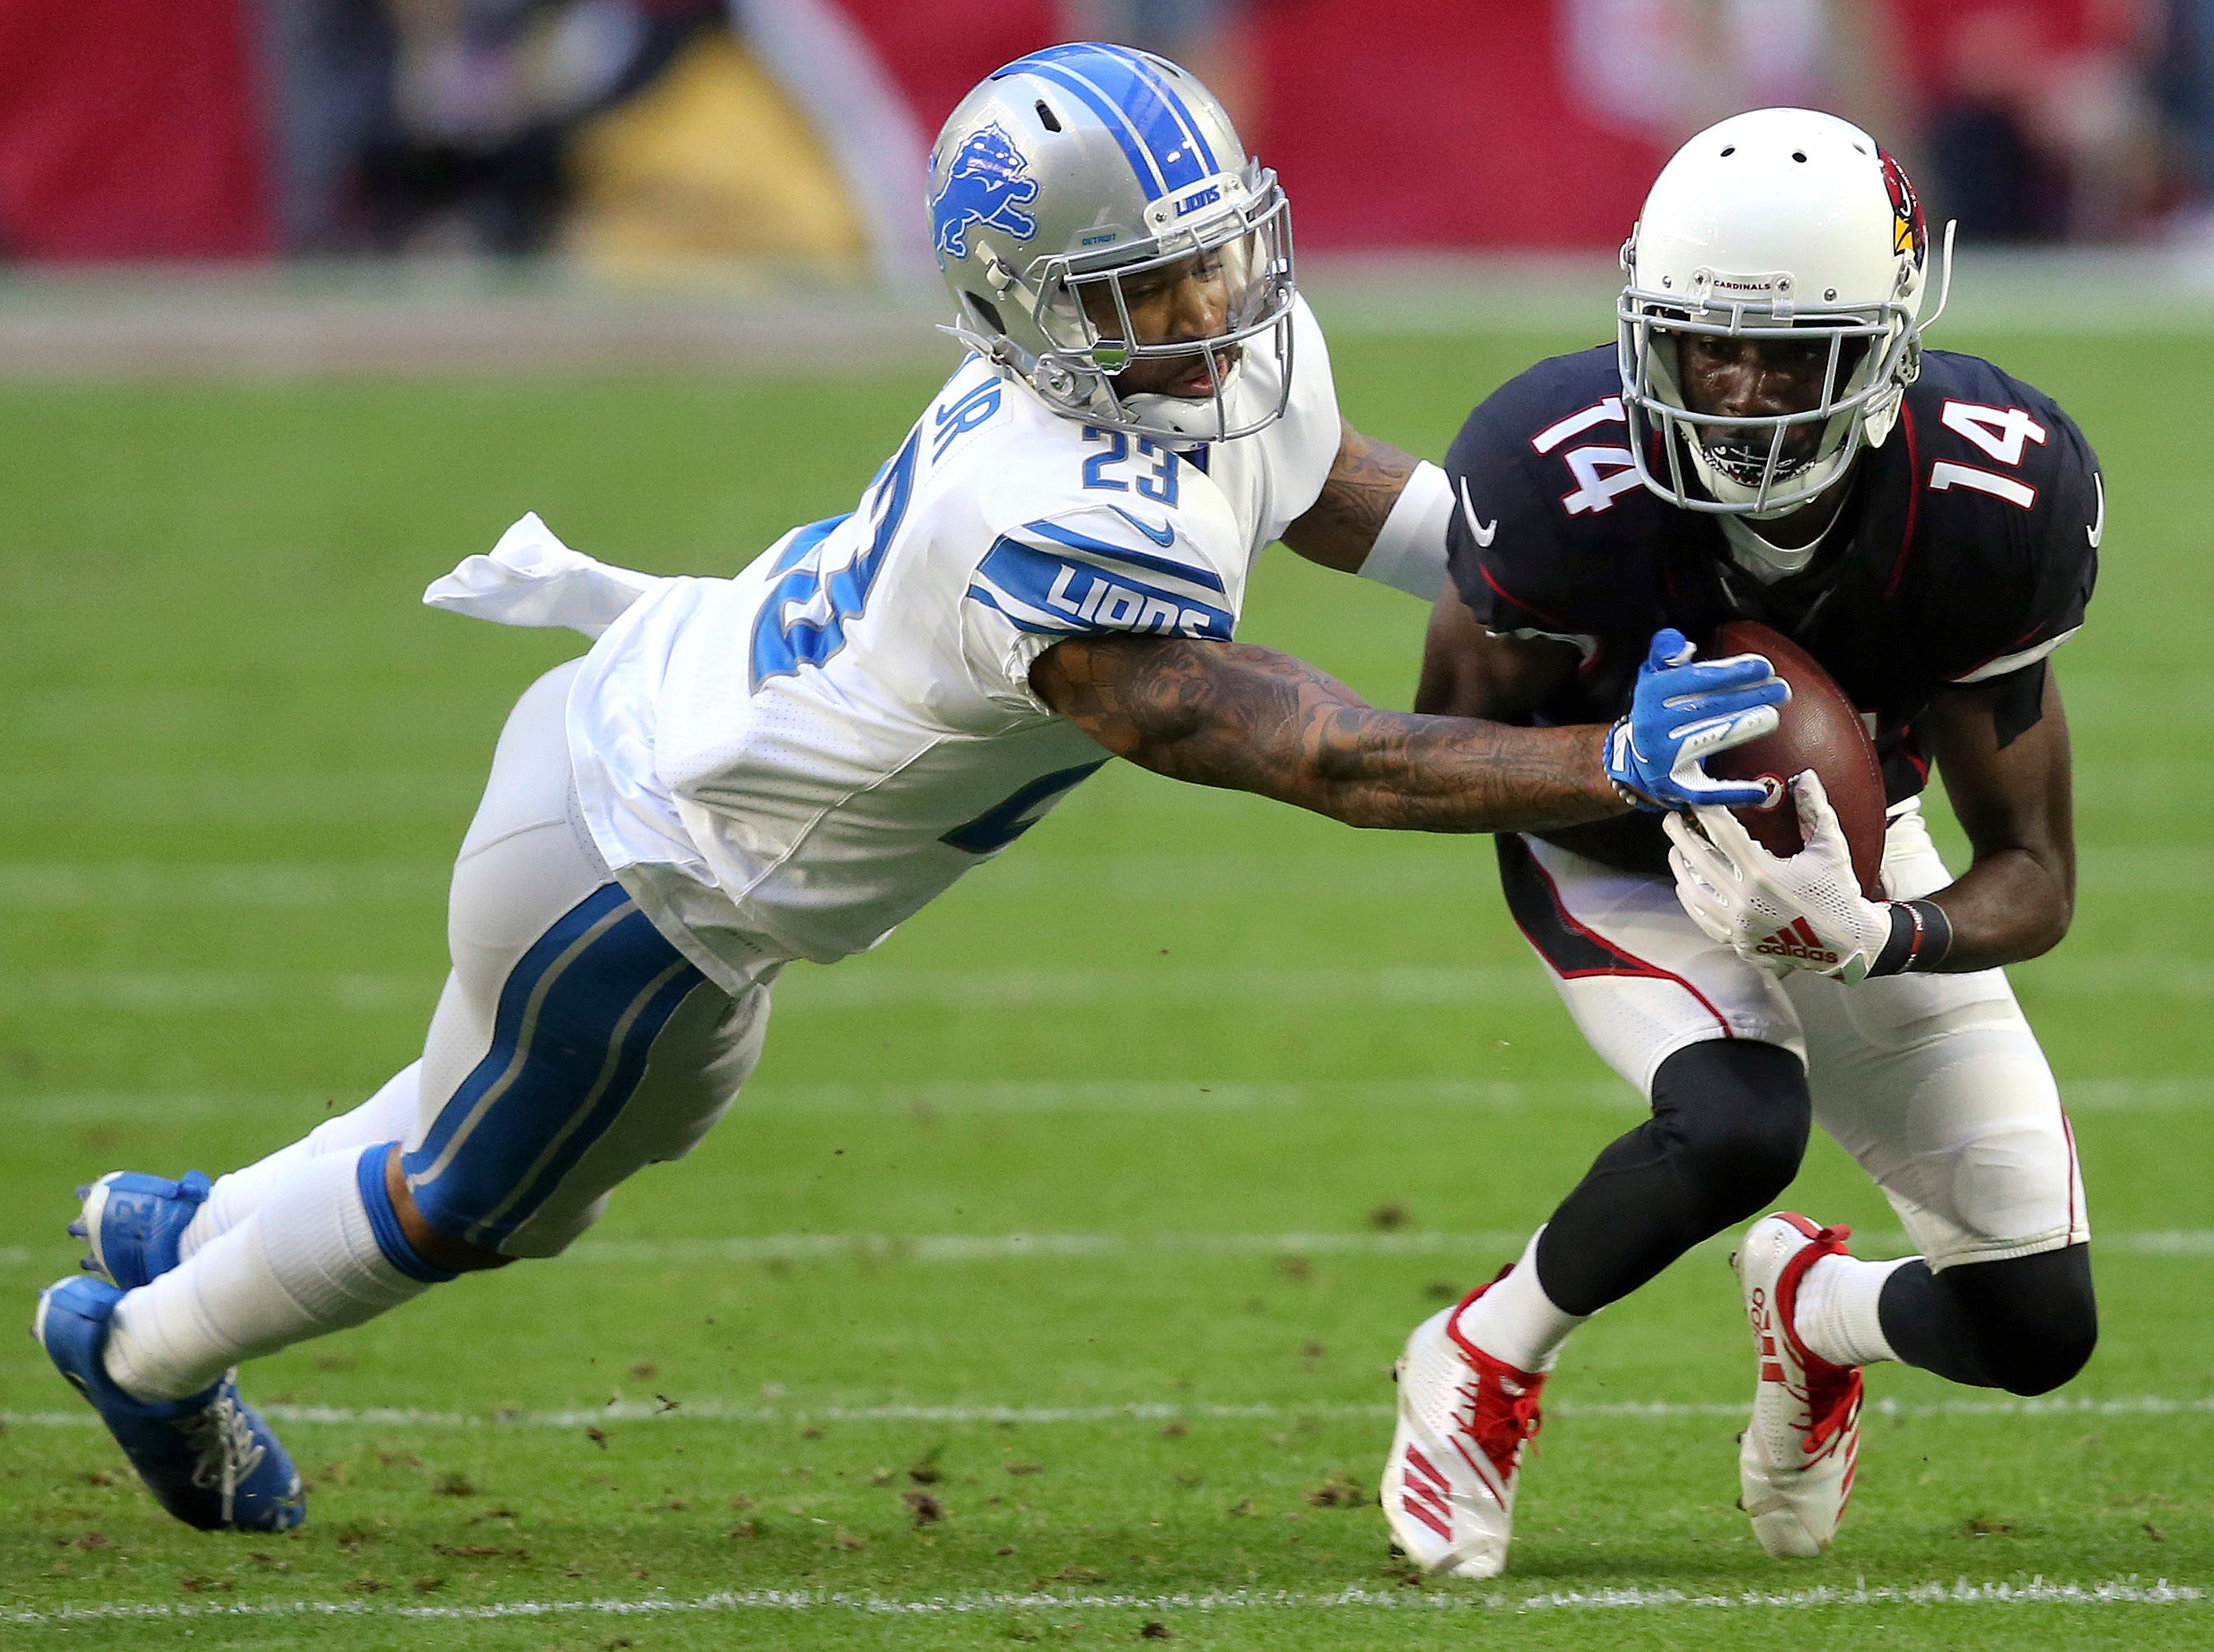 Arizona Cardinals wide receiver J.J. Nelson (14) pulls in a pass as Detroit Lions cornerback Darius Slay (23) defends during the first half.